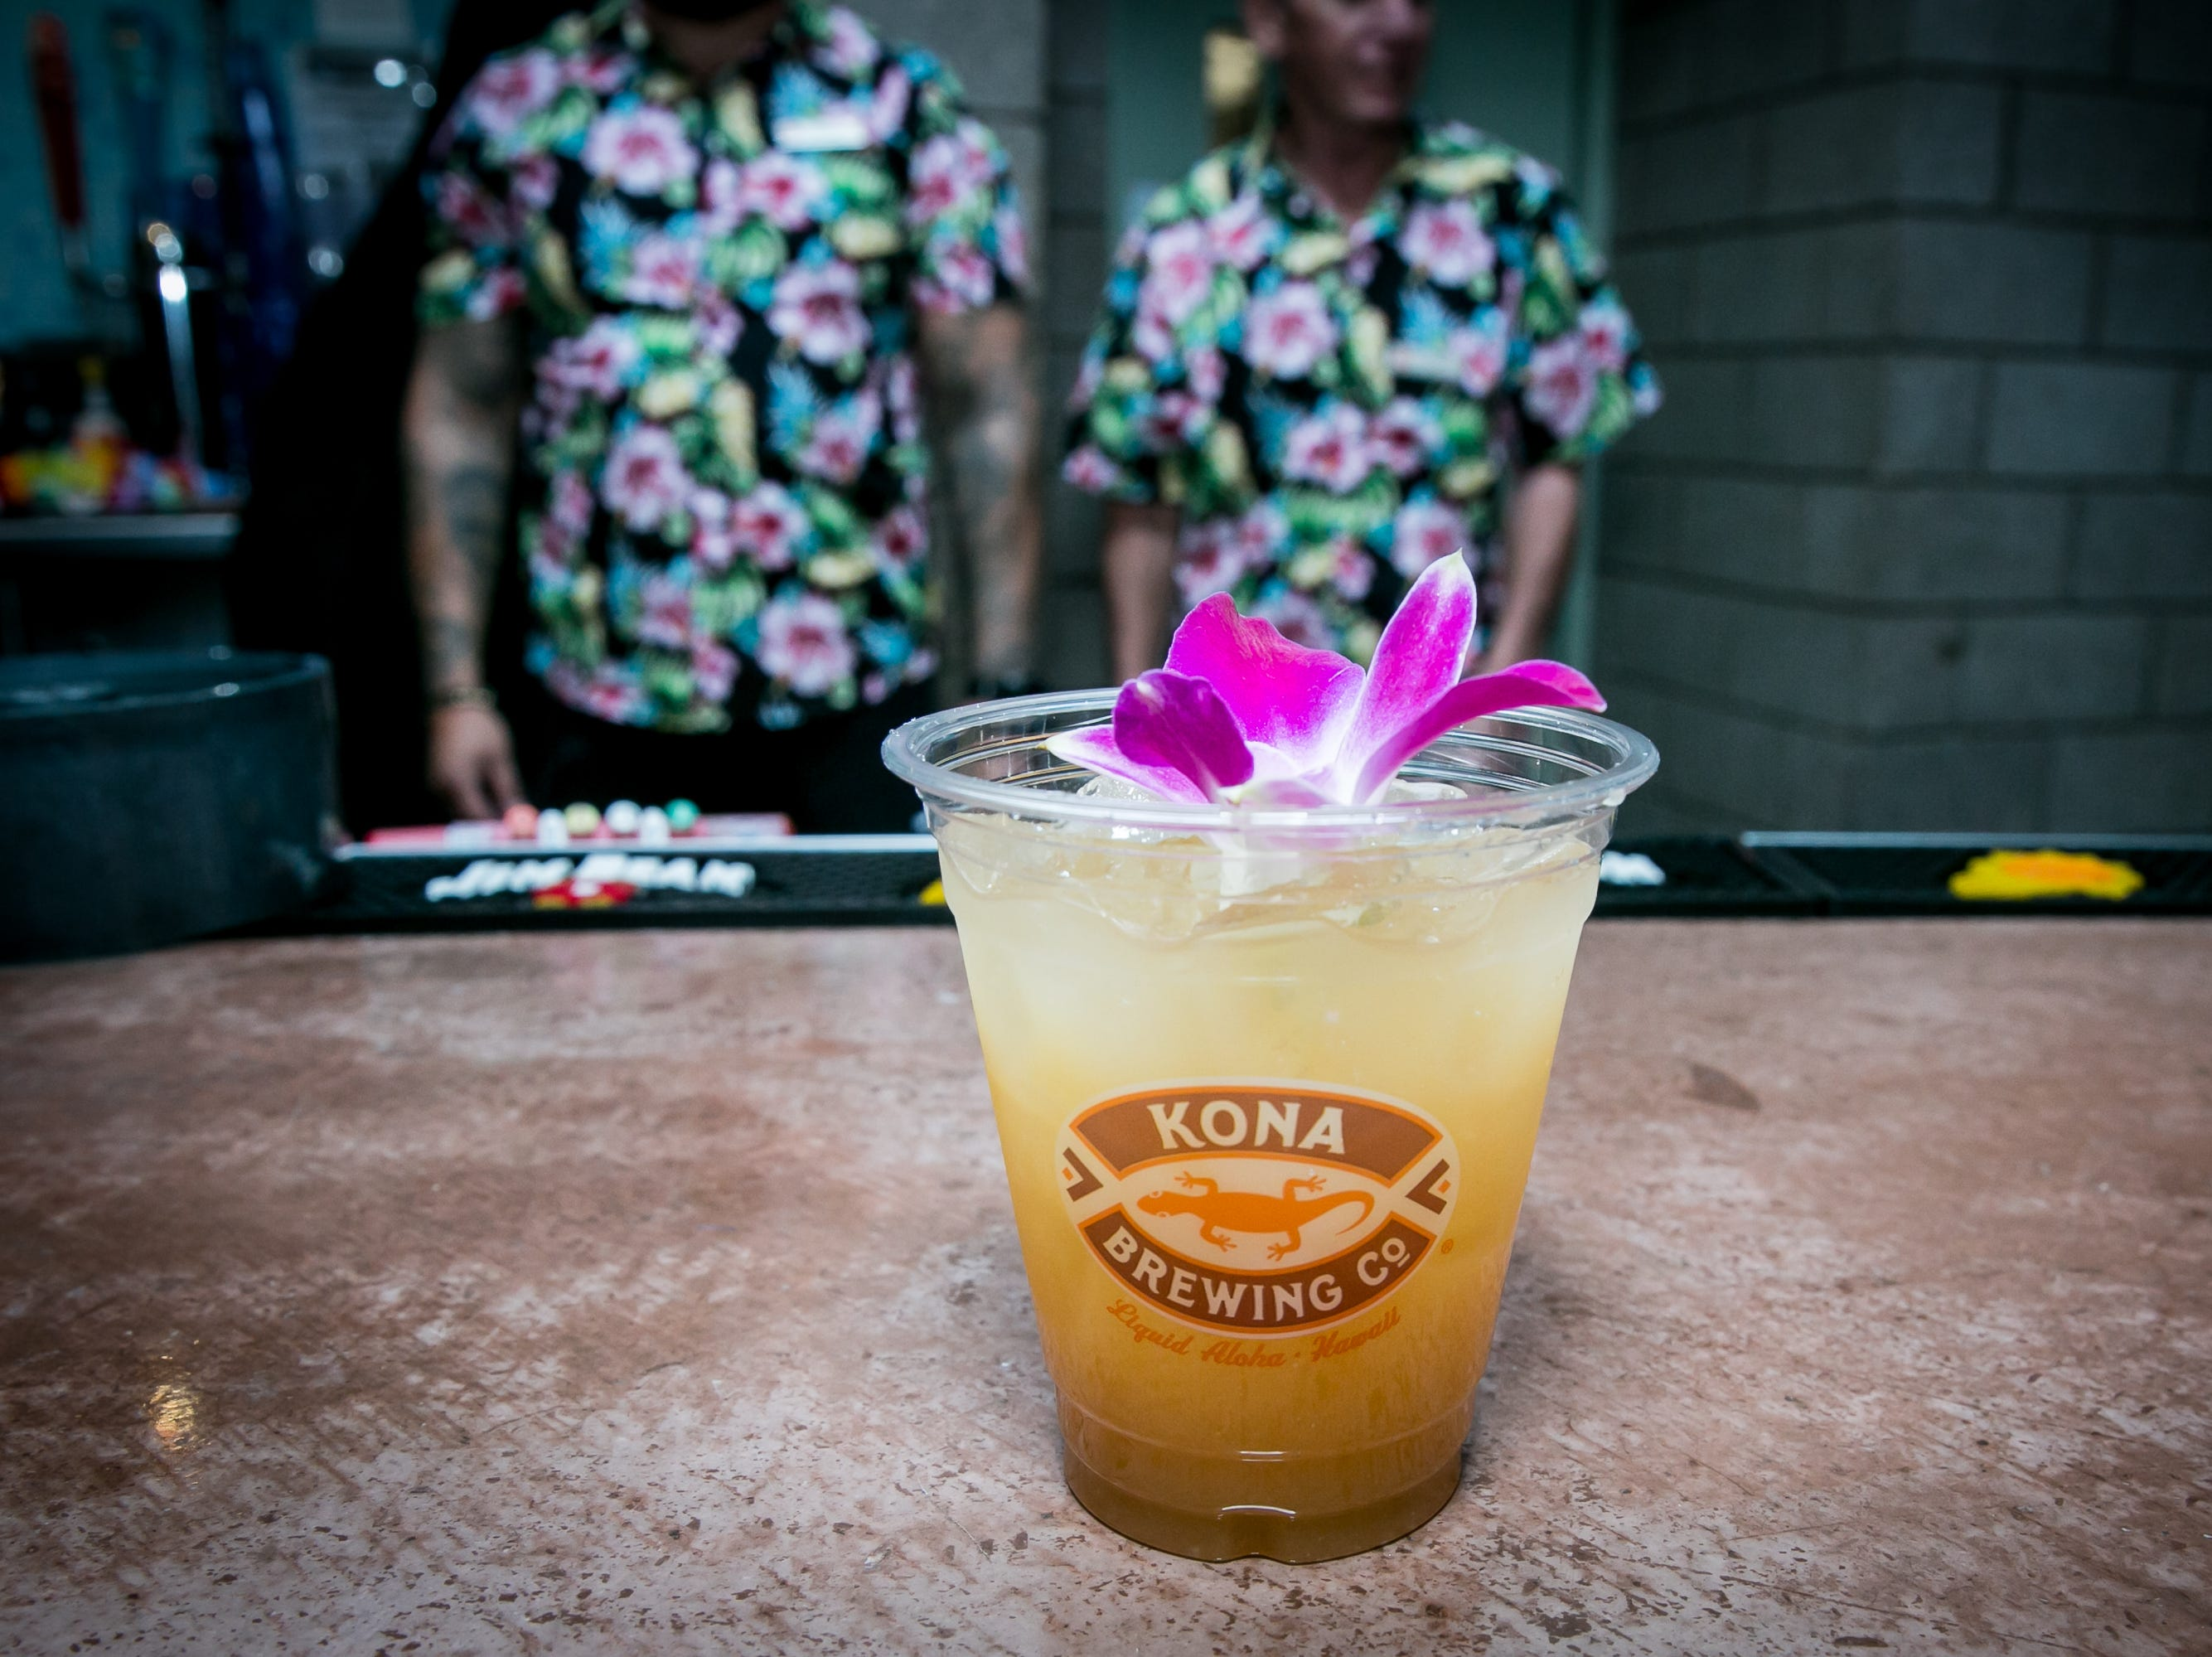 The Floridita cocktail had The Real McCoy 3 Year Aged Rum, Maraschino Liquer, Pamplemousse, and Swet and Sour during Arizona Tiki Oasis at Hotel Valley Ho in Scottsdale on April 12, 2019.